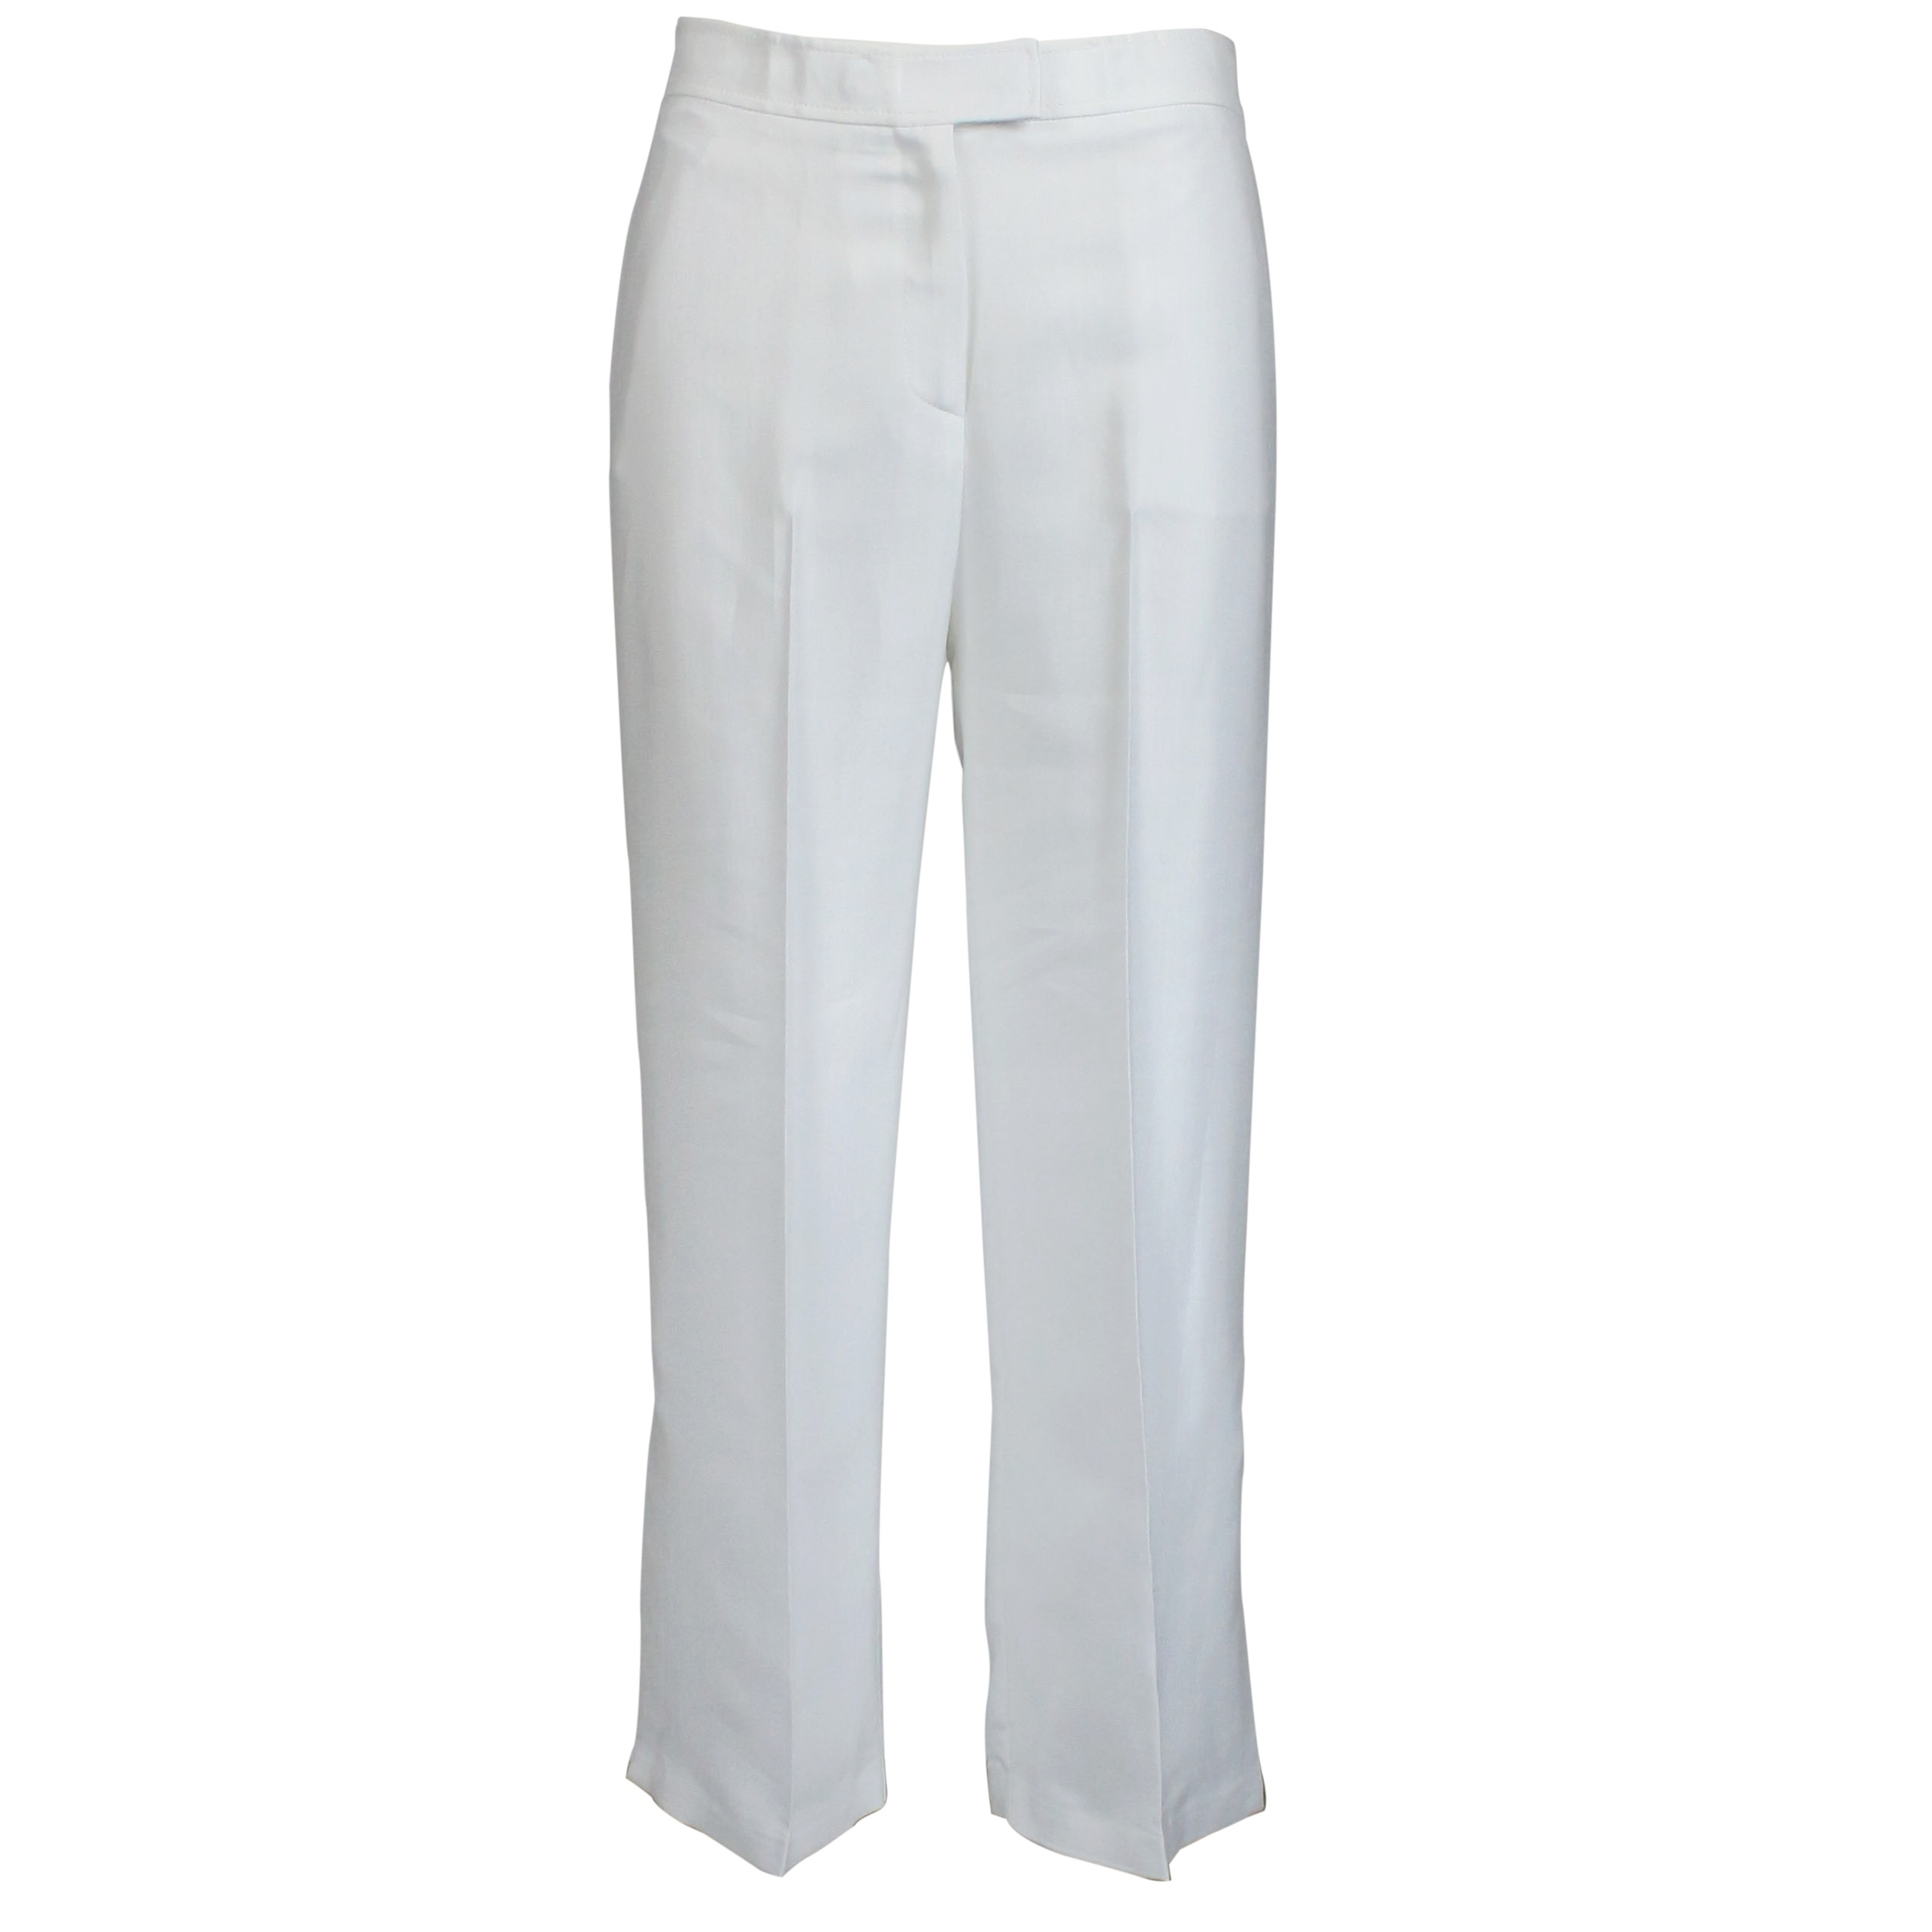 new arrival 8a2bb e24be Pantalone Paterno in viscosa